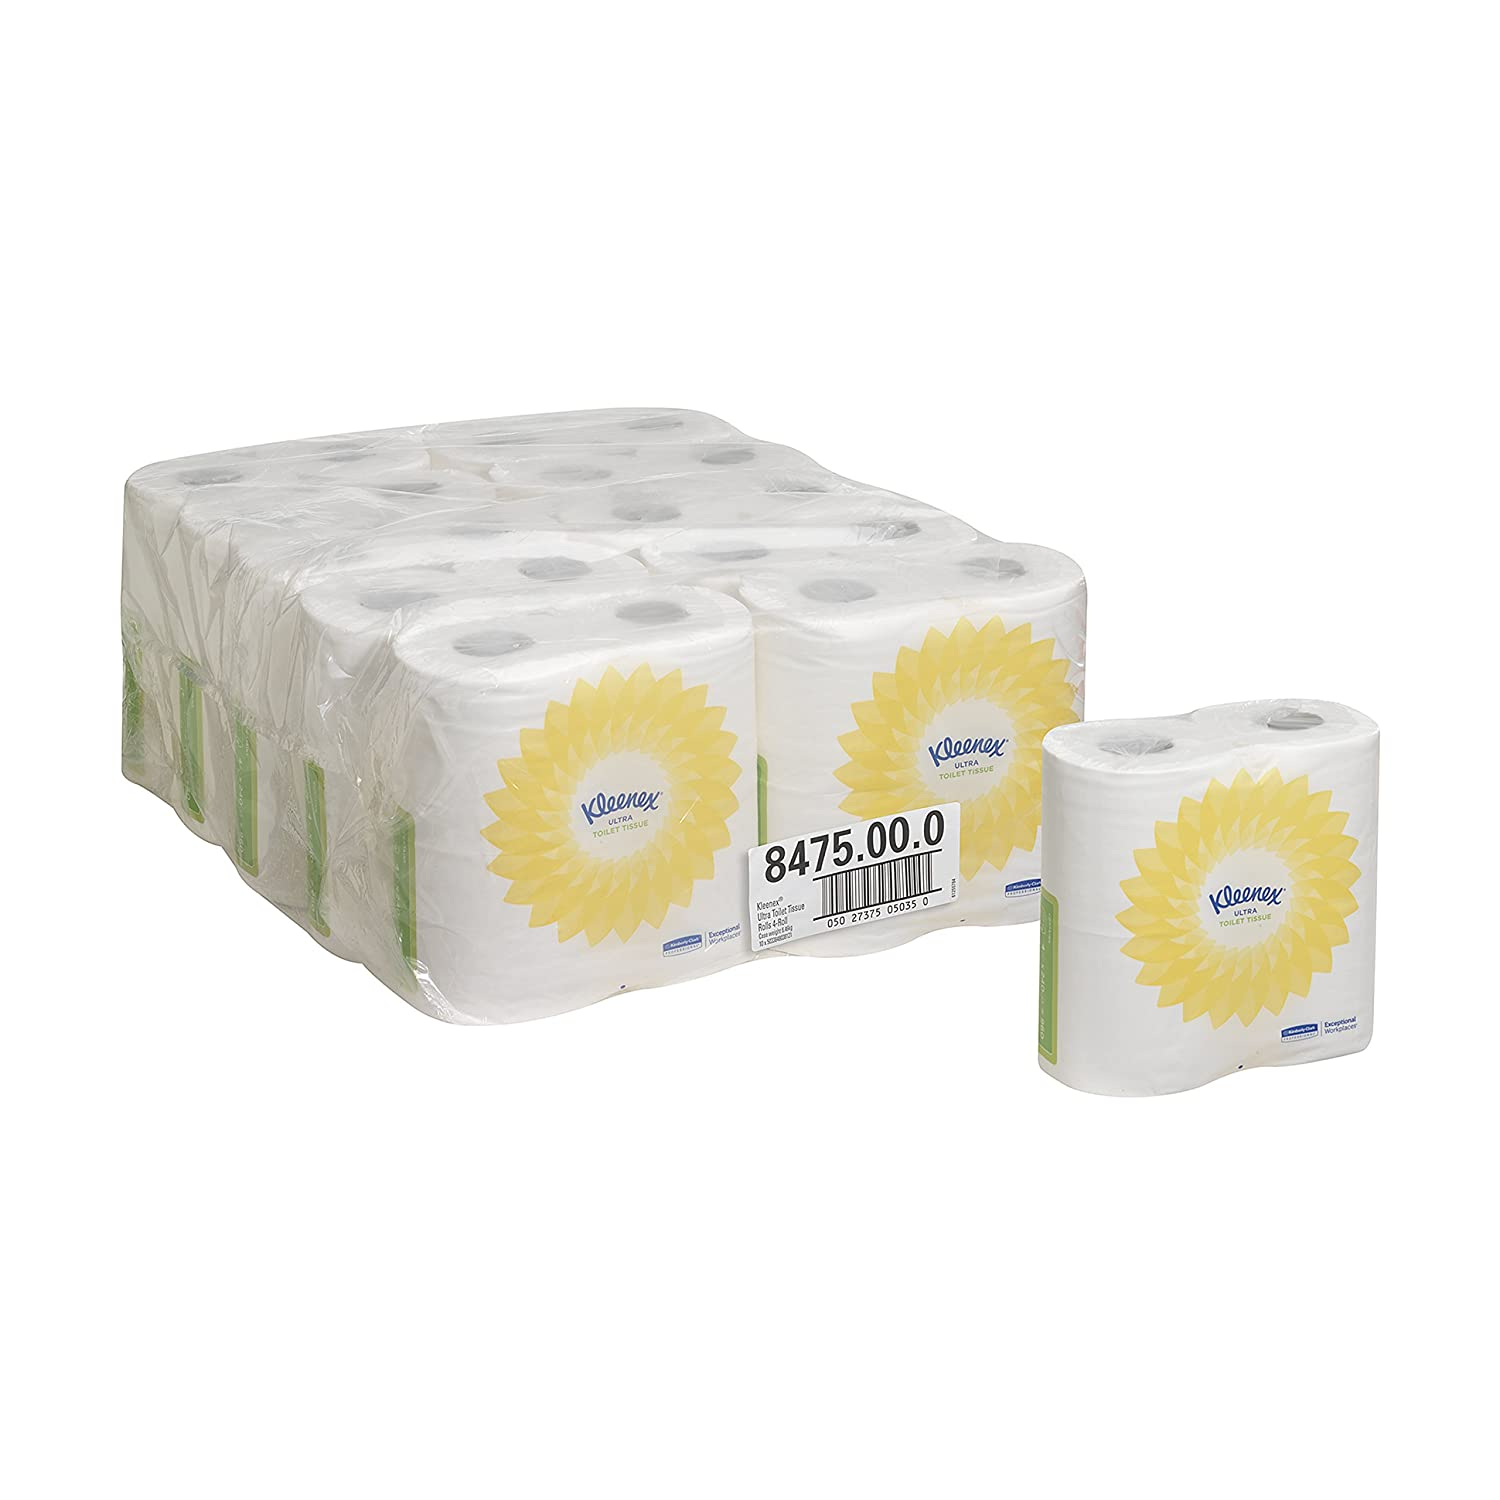 KLEENEX* ULTRA Toilet Tissue Rolls 8475 -  240 white, 2 ply sheets per roll (case contains 40 rolls) Kimberly-Clark Professional